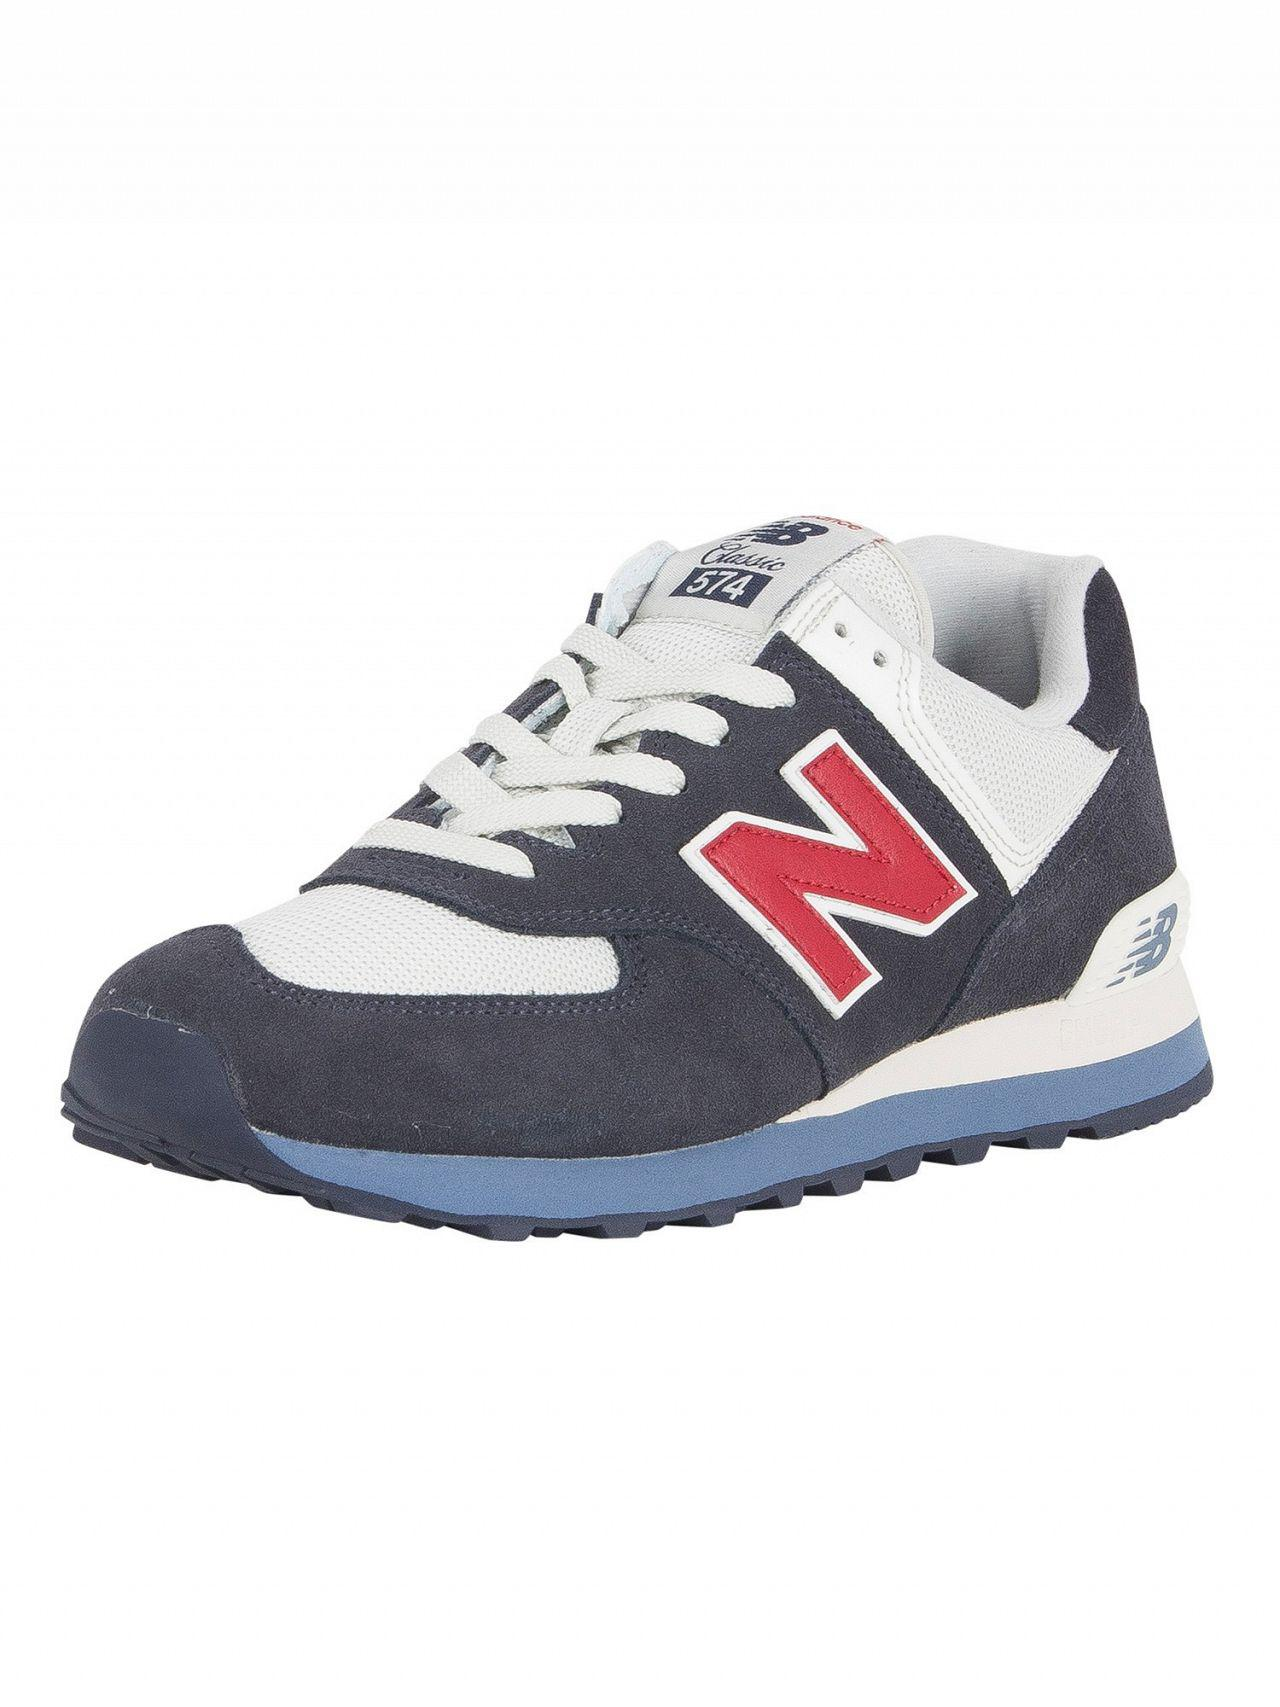 Lyst - New Balance Navy red 574 Suede Trainers in Blue for Men ... 30fff2b6b79b